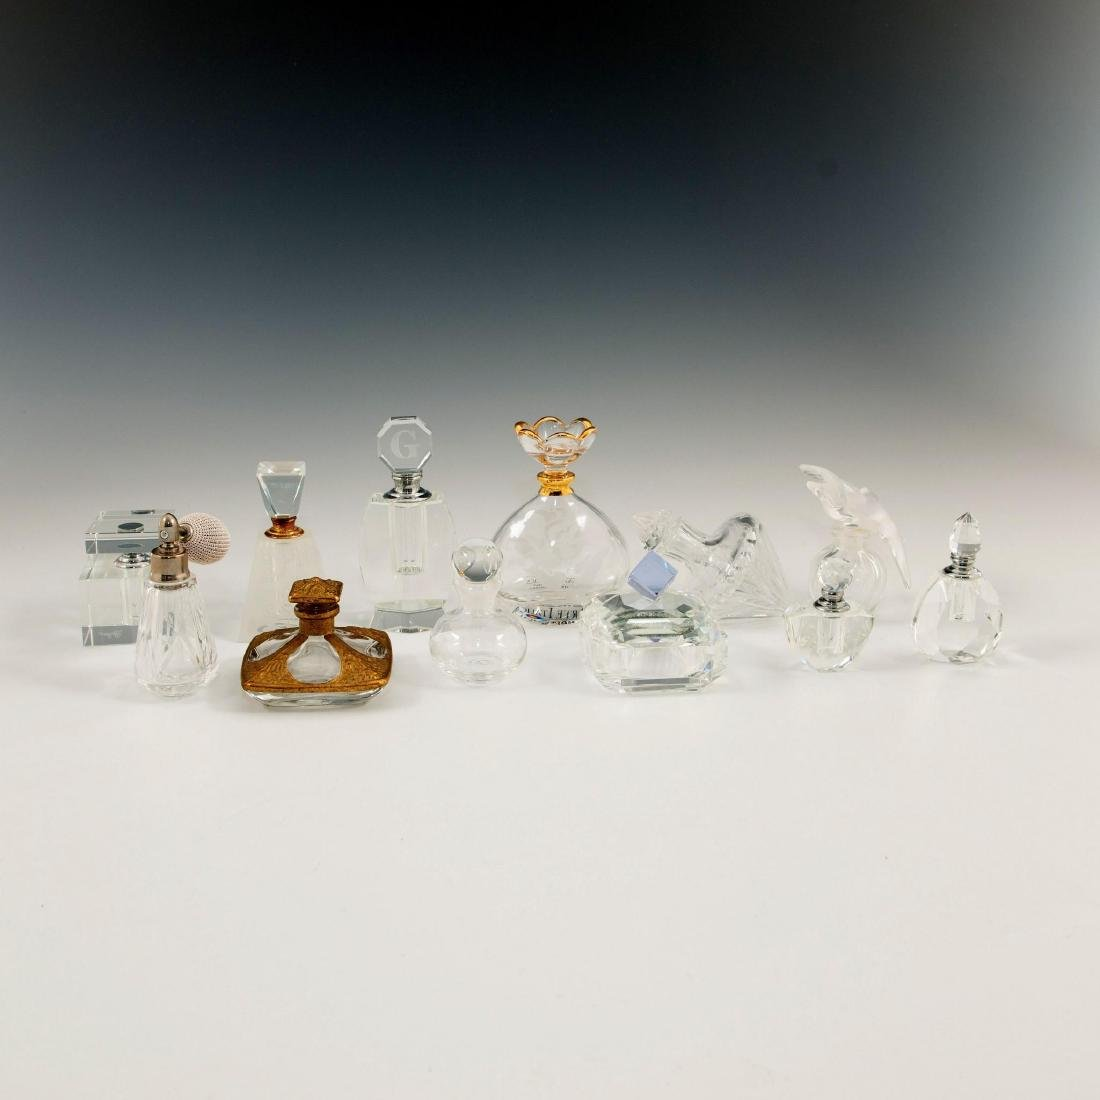 GROUP OF 12 CRYSTAL ART GLASS PERFUME BOTTLES LALIQUE